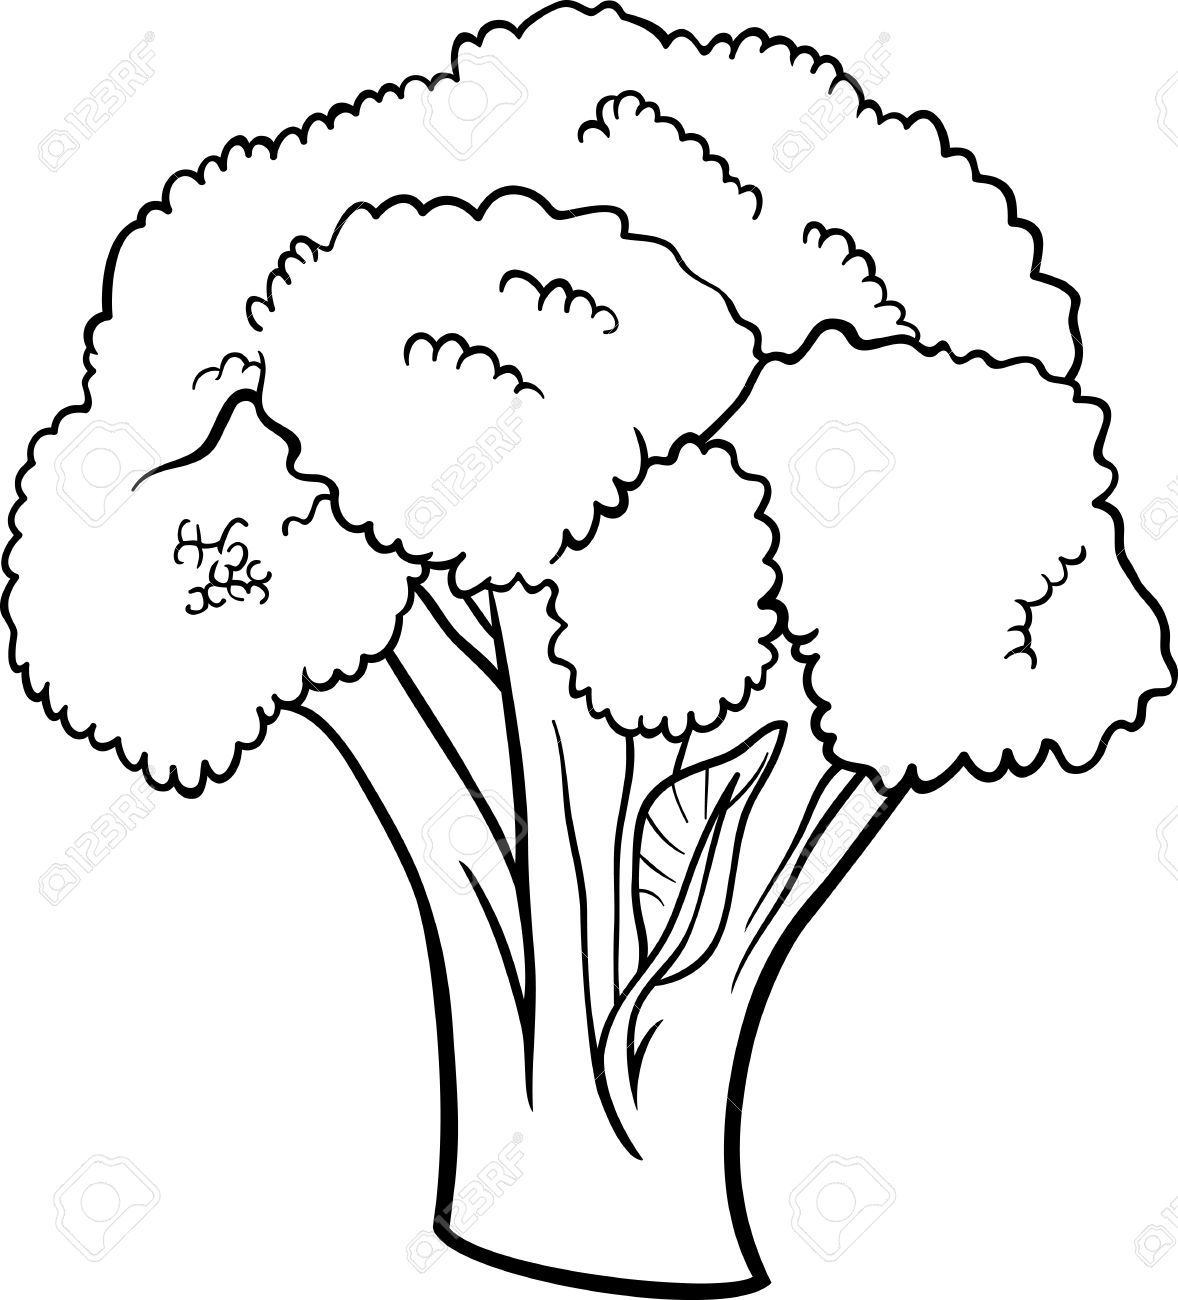 Broccoli clipart black and white And collection Illustration White Black